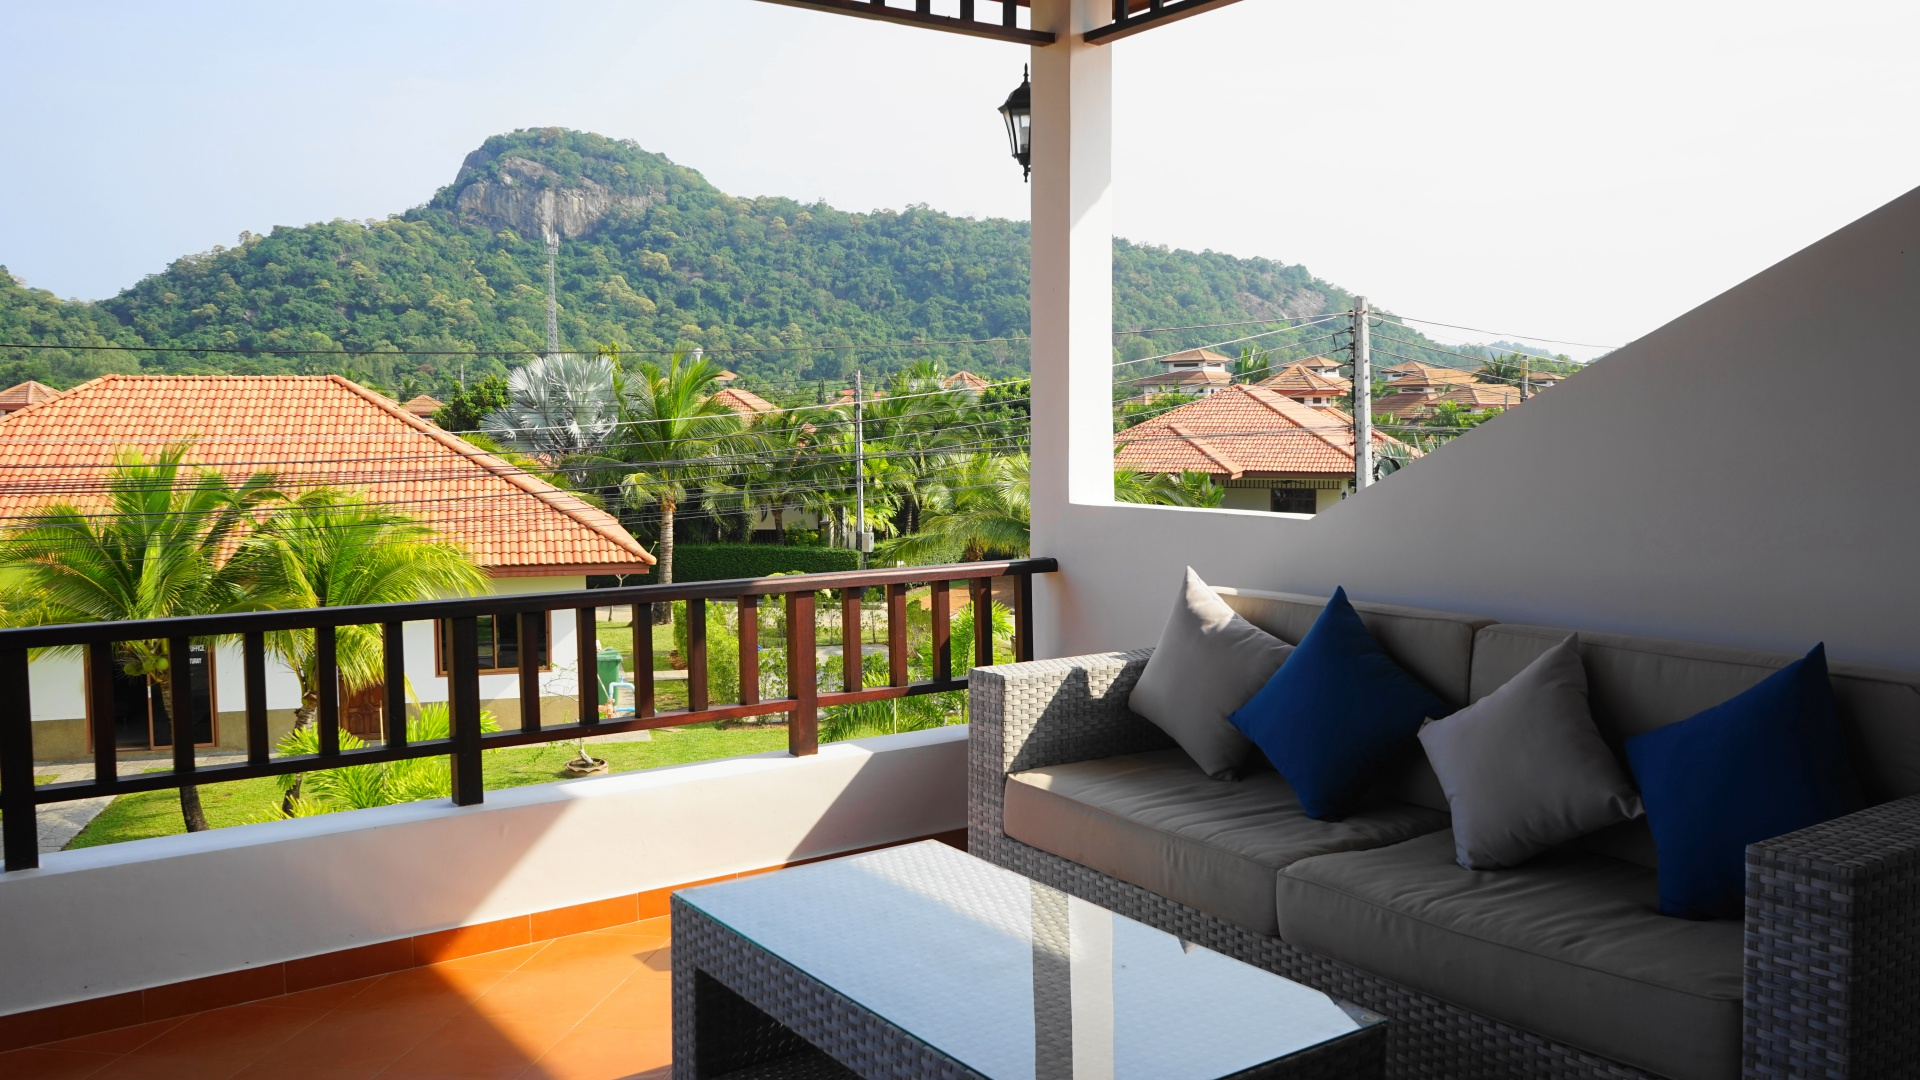 Balcony of Villa Royale F3 in Manora Village III, Hua Hin, Thailand